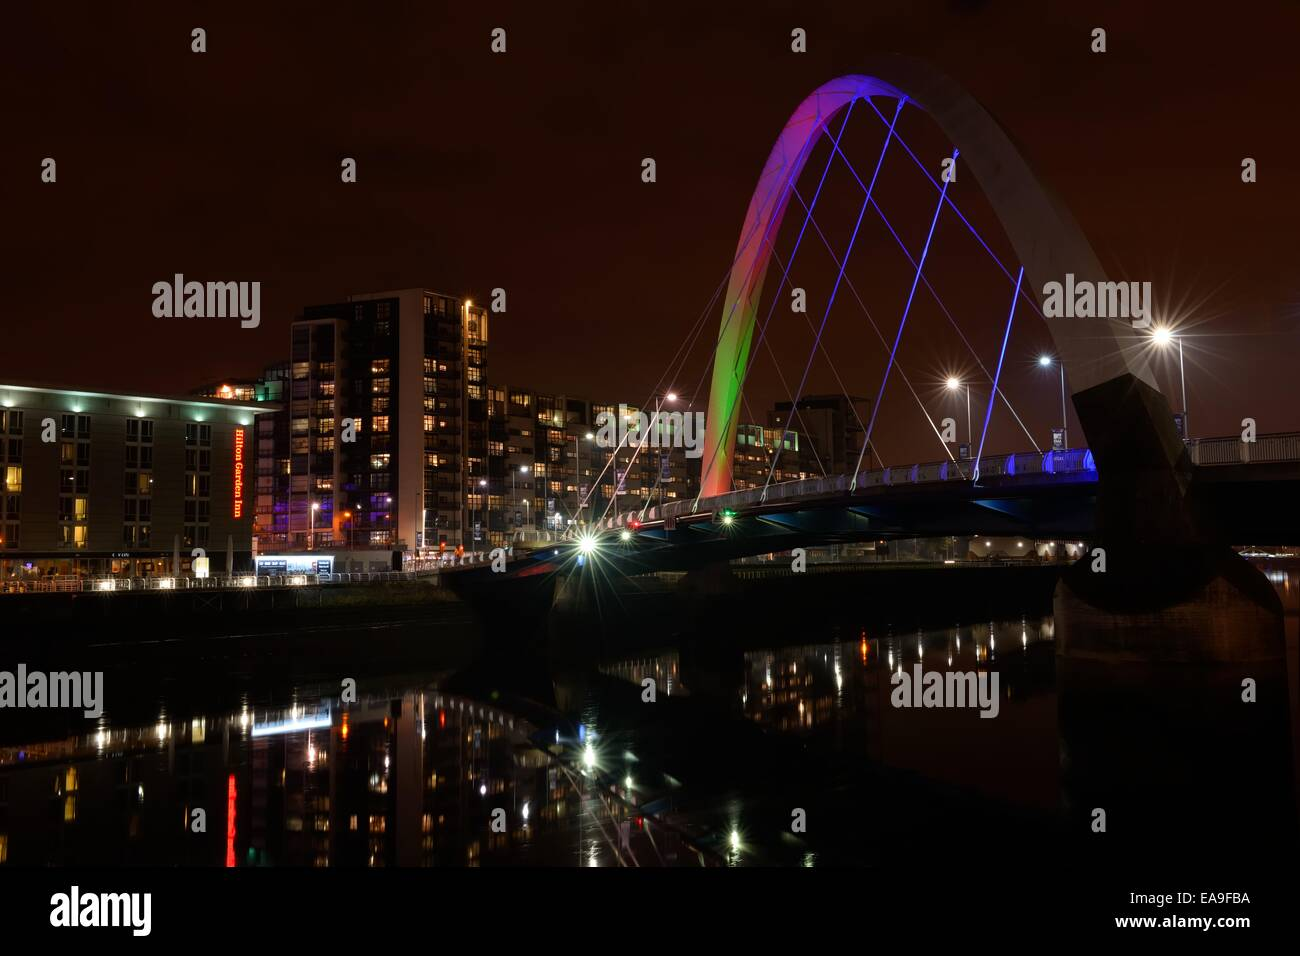 the-river-clyde-in-glasgow-with-the-arc-